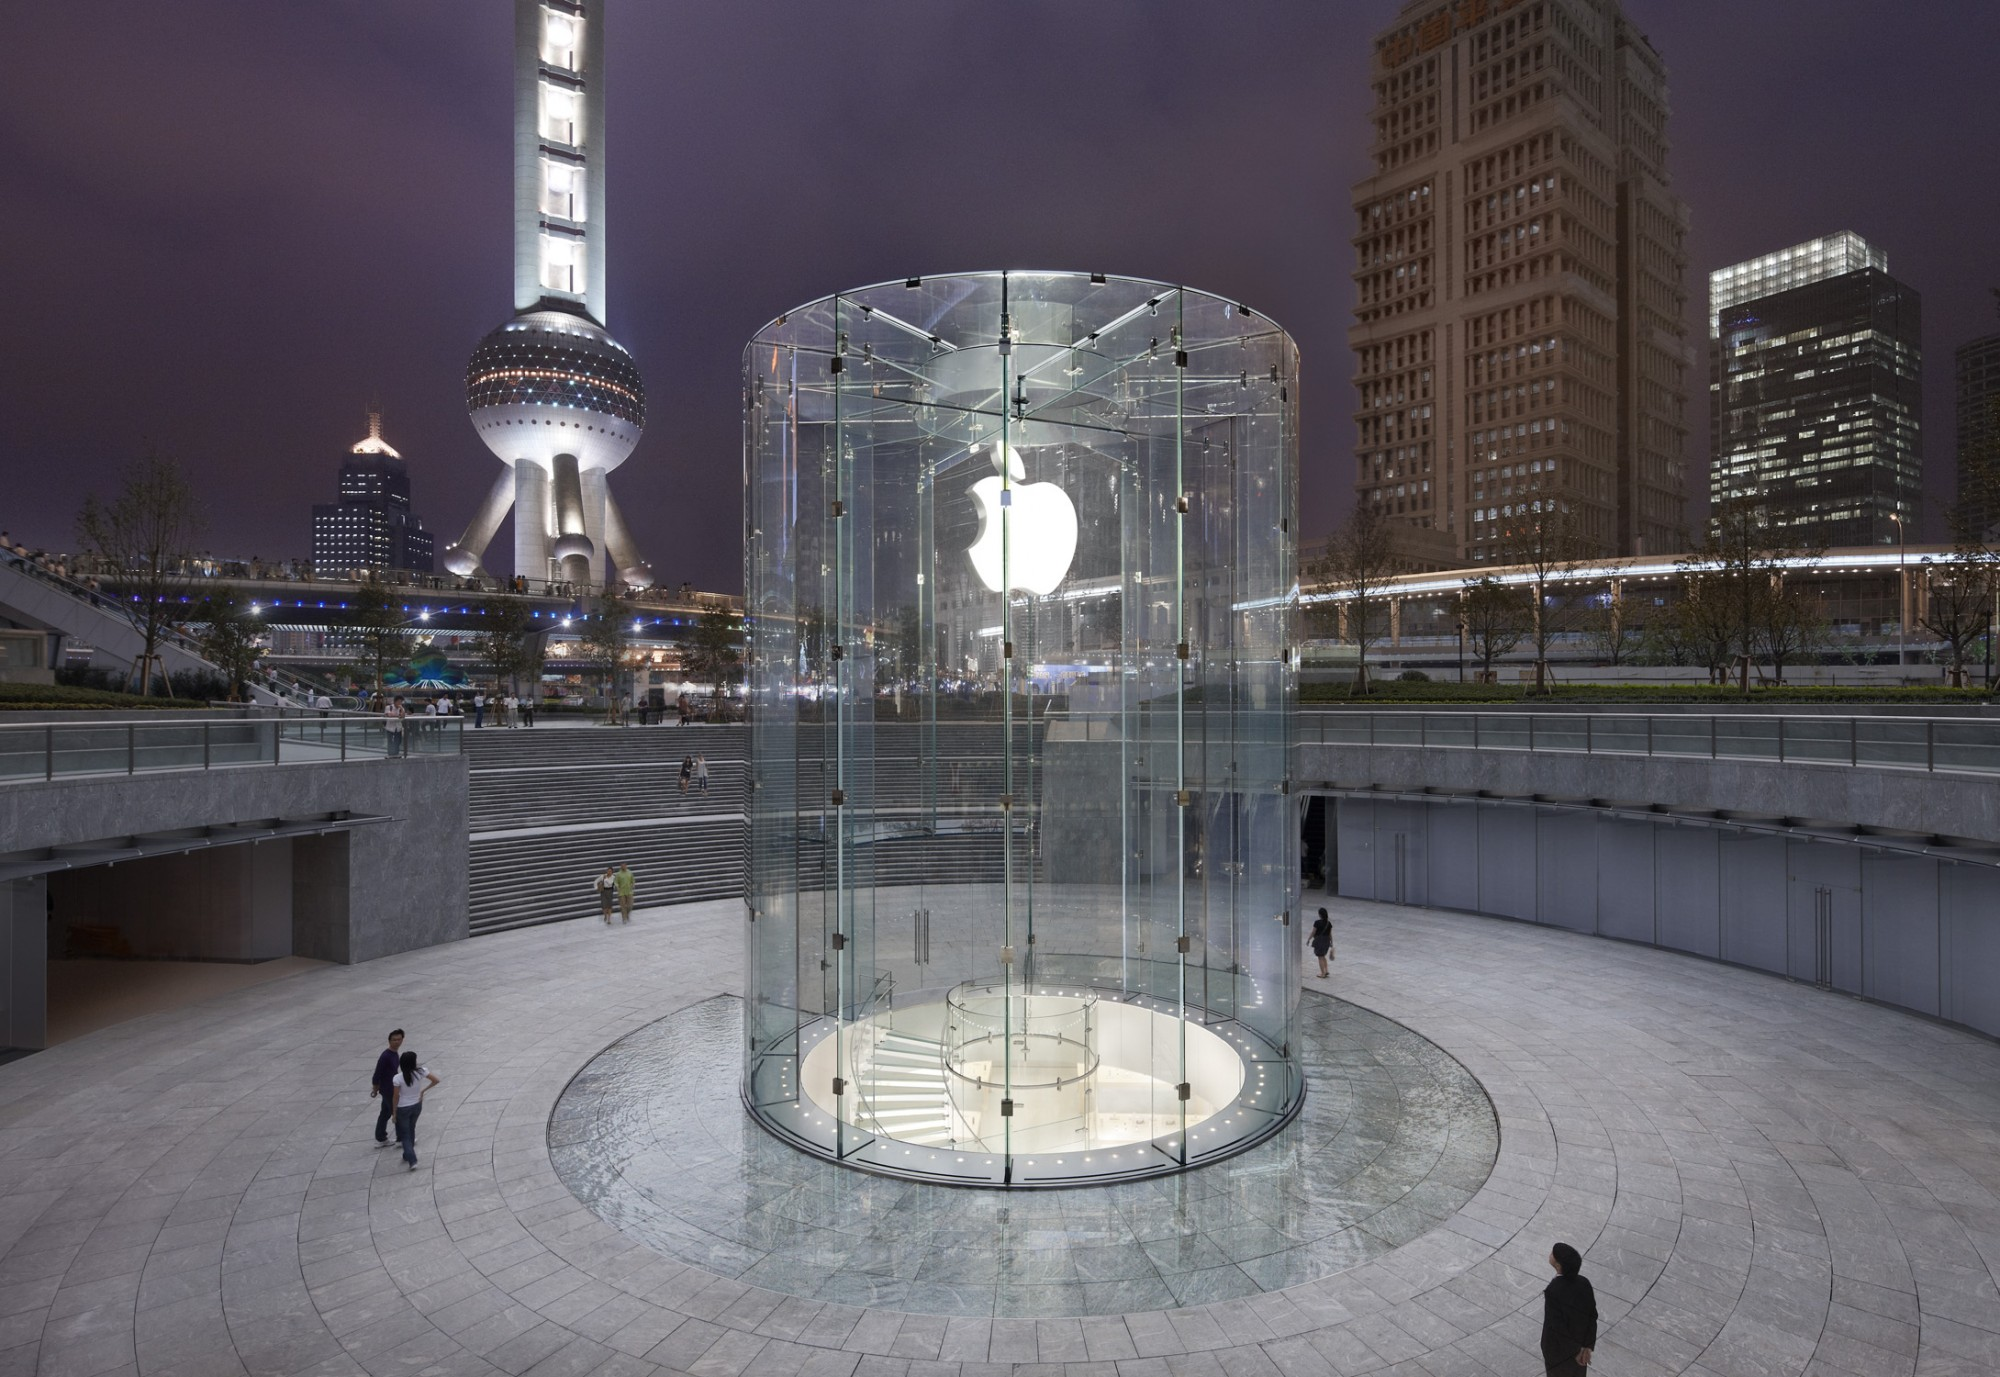 Take a sneak peak inside Apple's gorgeous new Chongqing Store